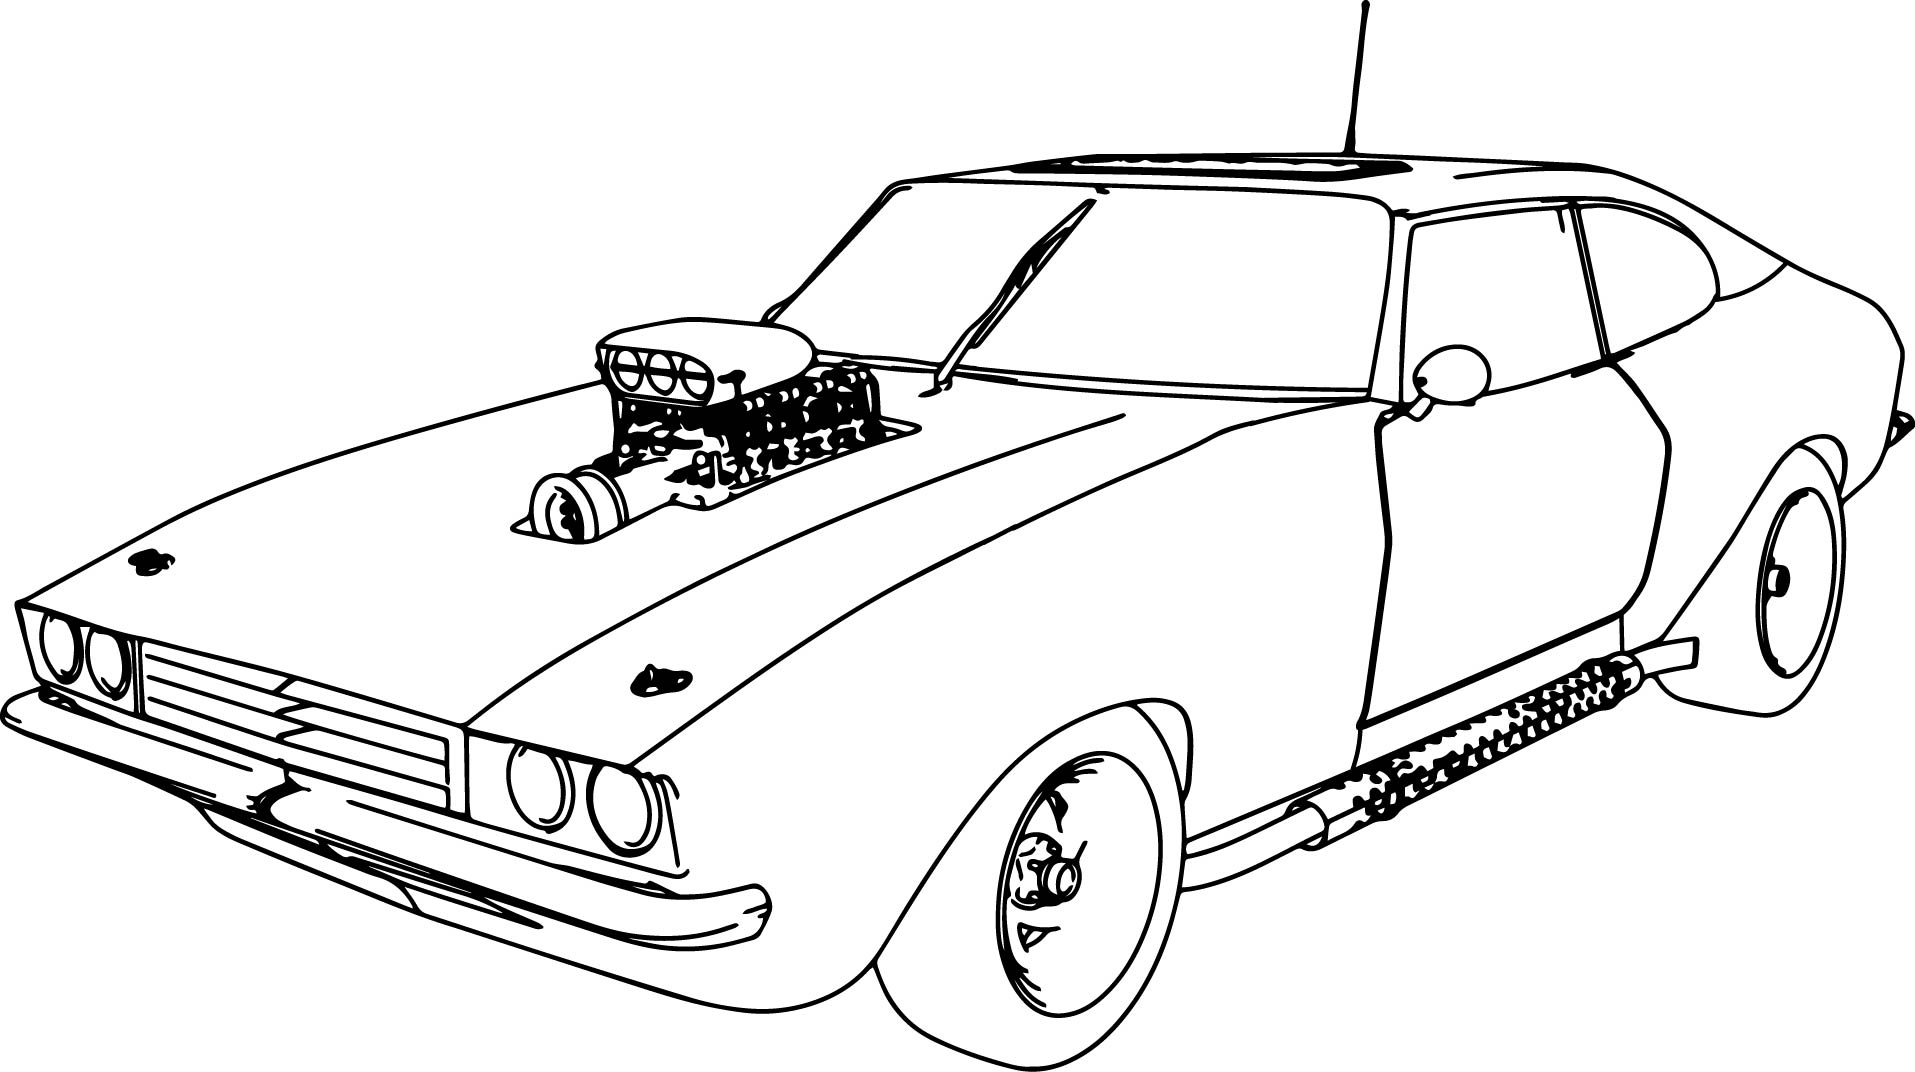 1915x1072 Classic Cars Coloring Pages For Adults New Muscle Car Download